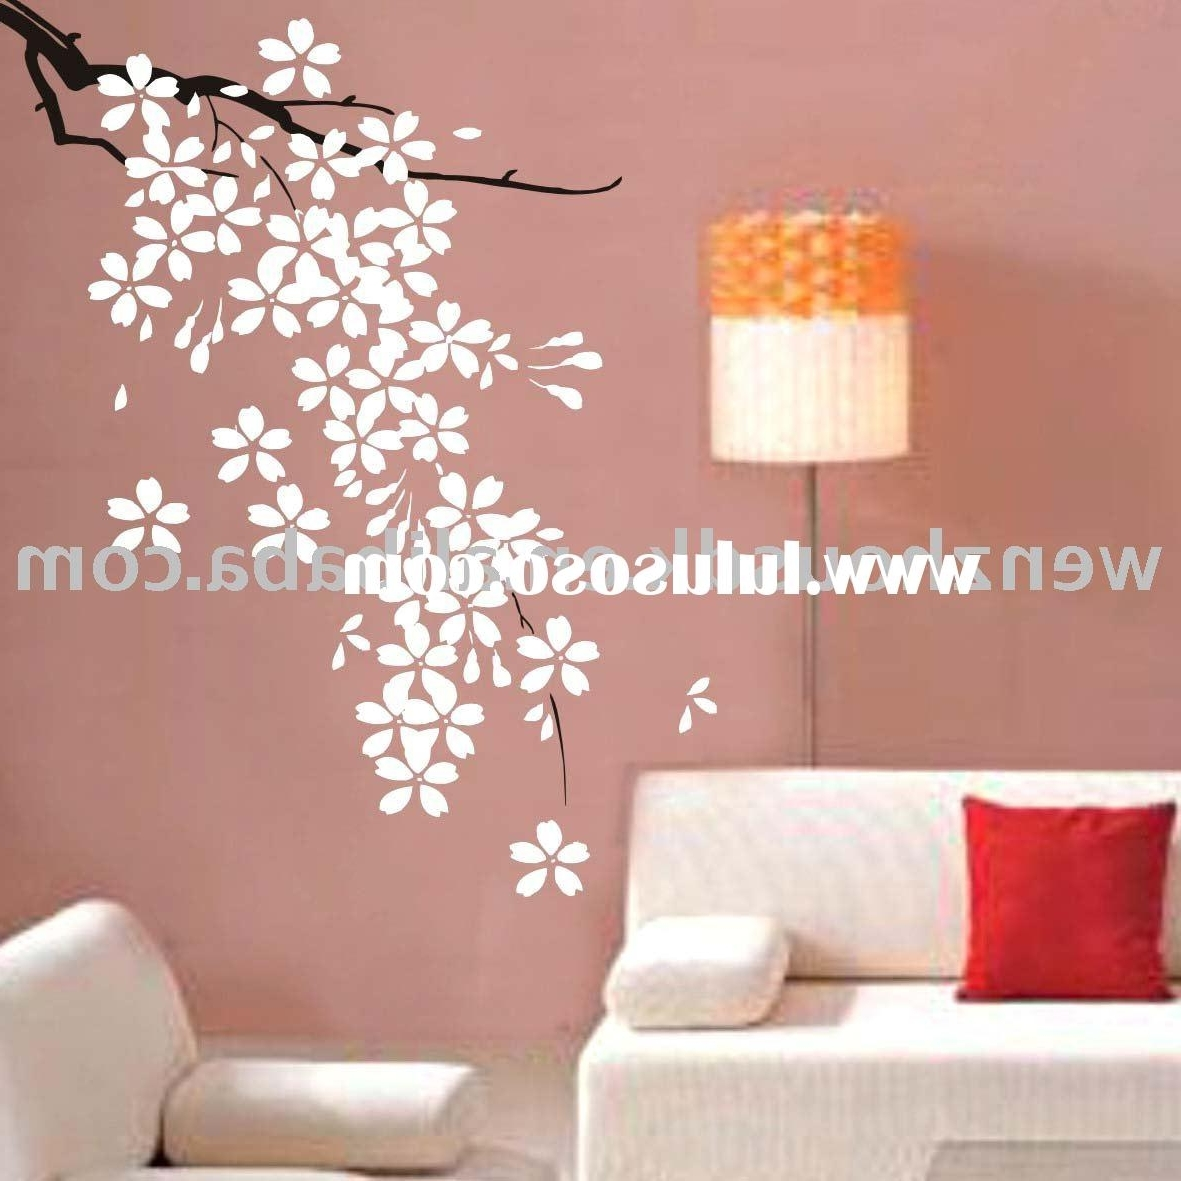 Removable Wall Accents In Popular Wall Art For Living Room Creative And Innovative Decorative Wall (View 11 of 15)